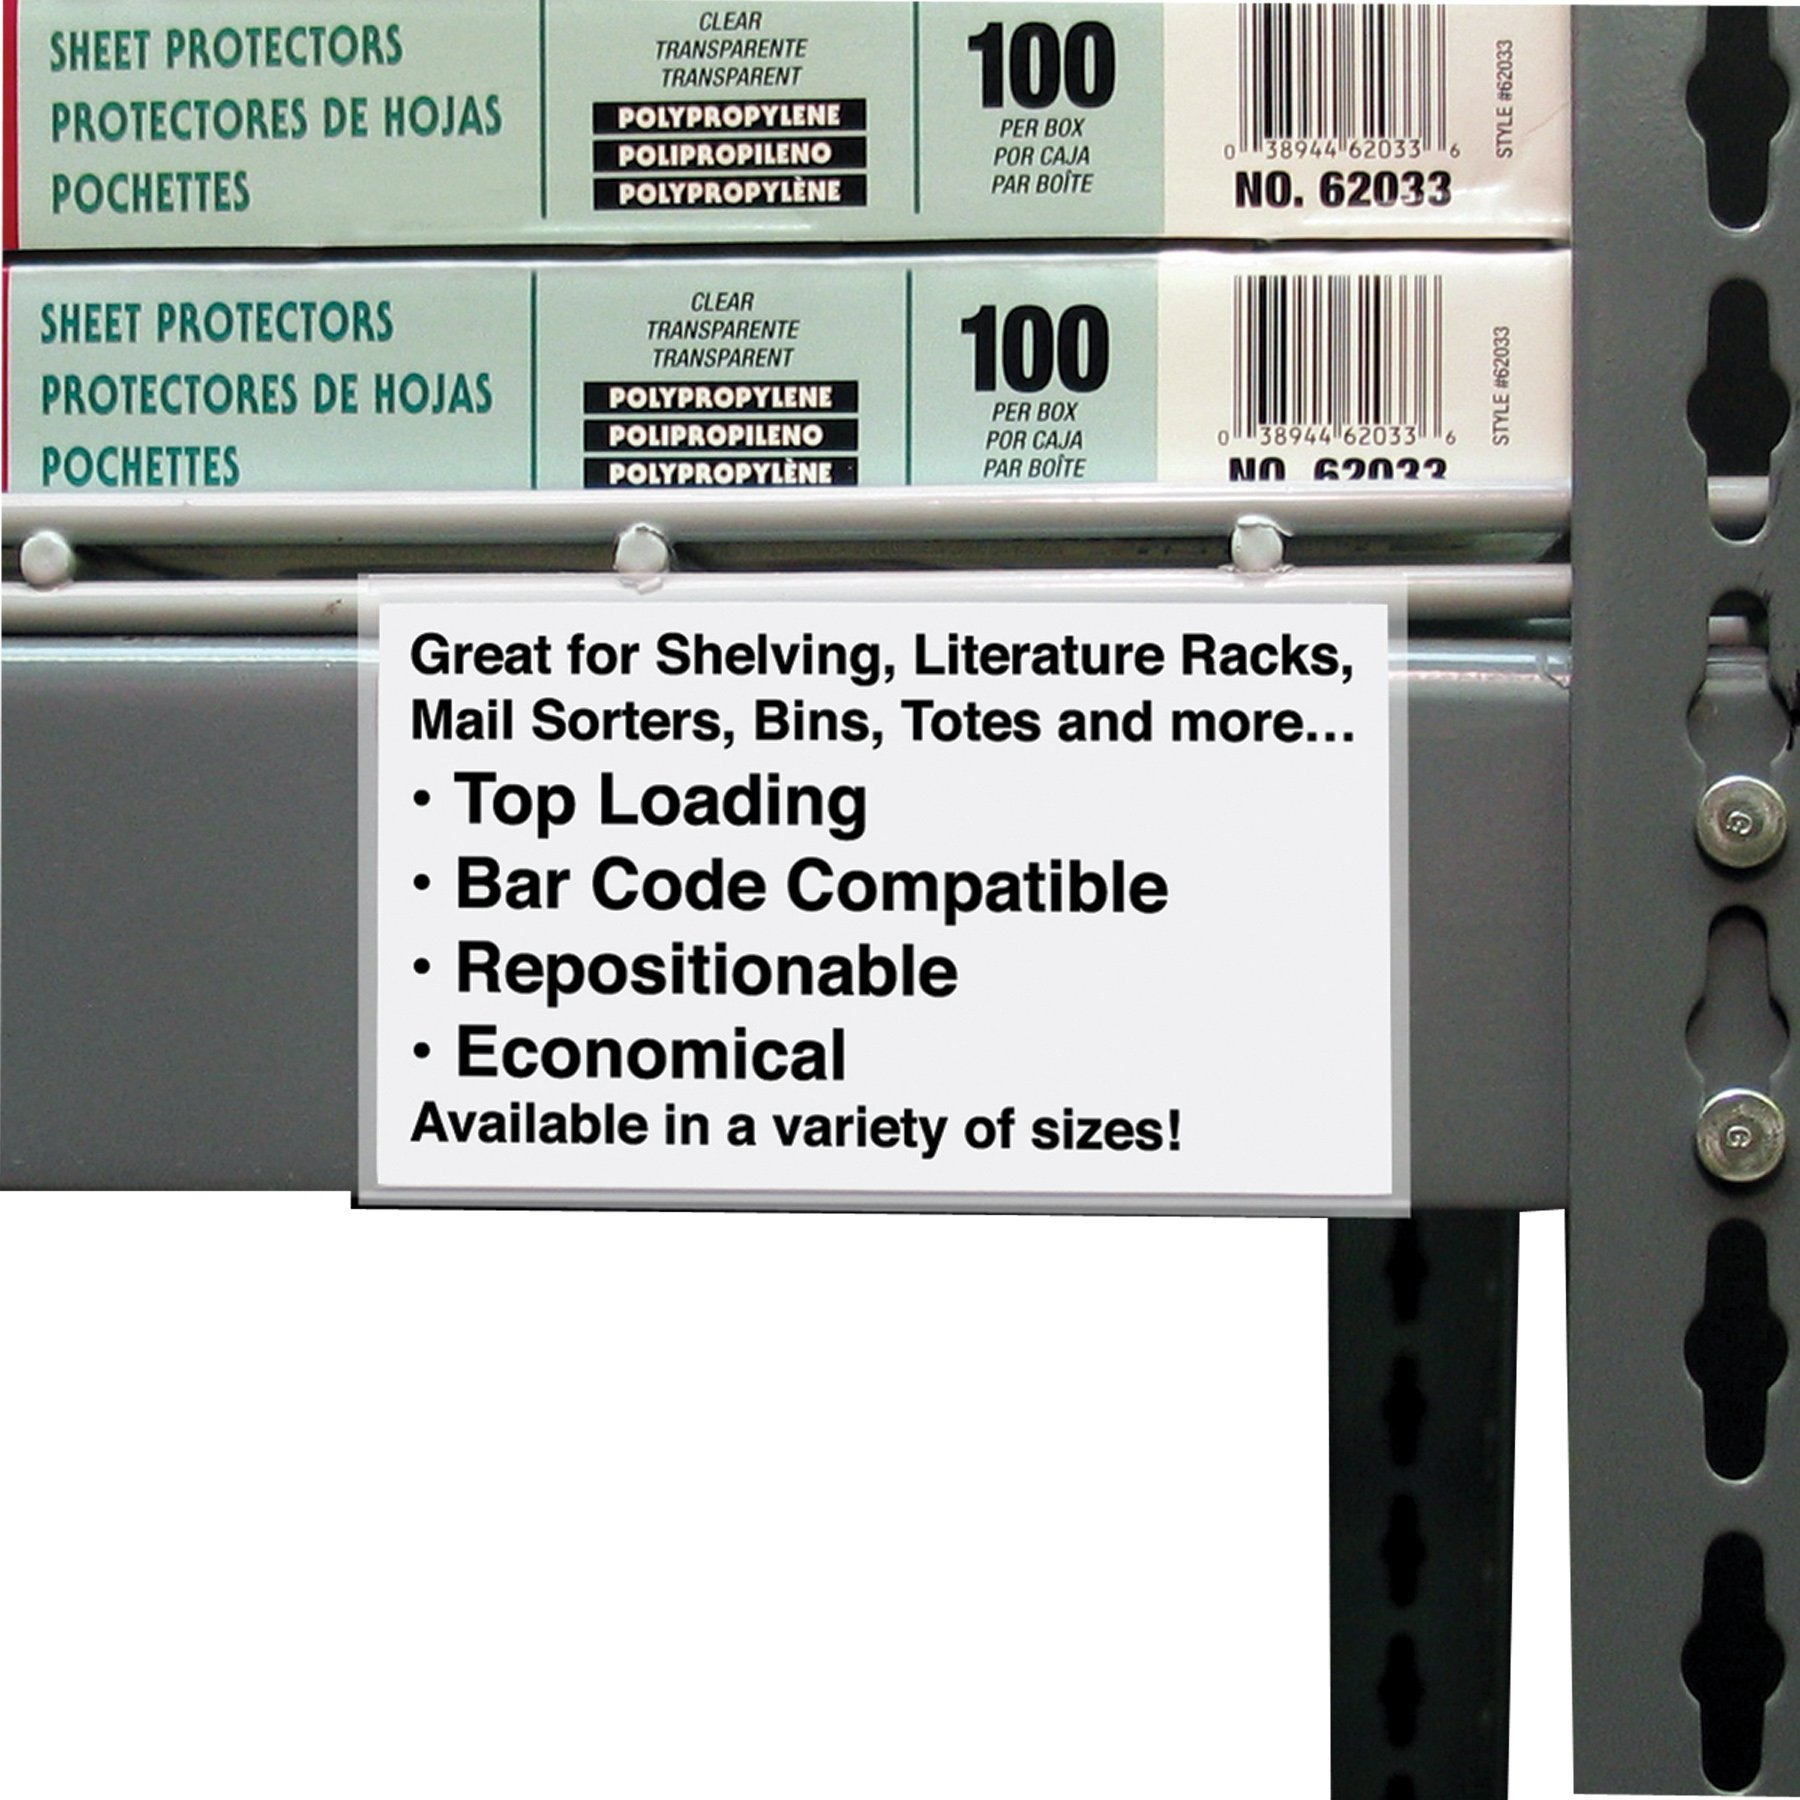 C-Line Best Value Peel and Stick Shelf/Bin Label Holders, Inserts Included, 3 x 5 Inches, 50 per Pack (87647) by C-Line